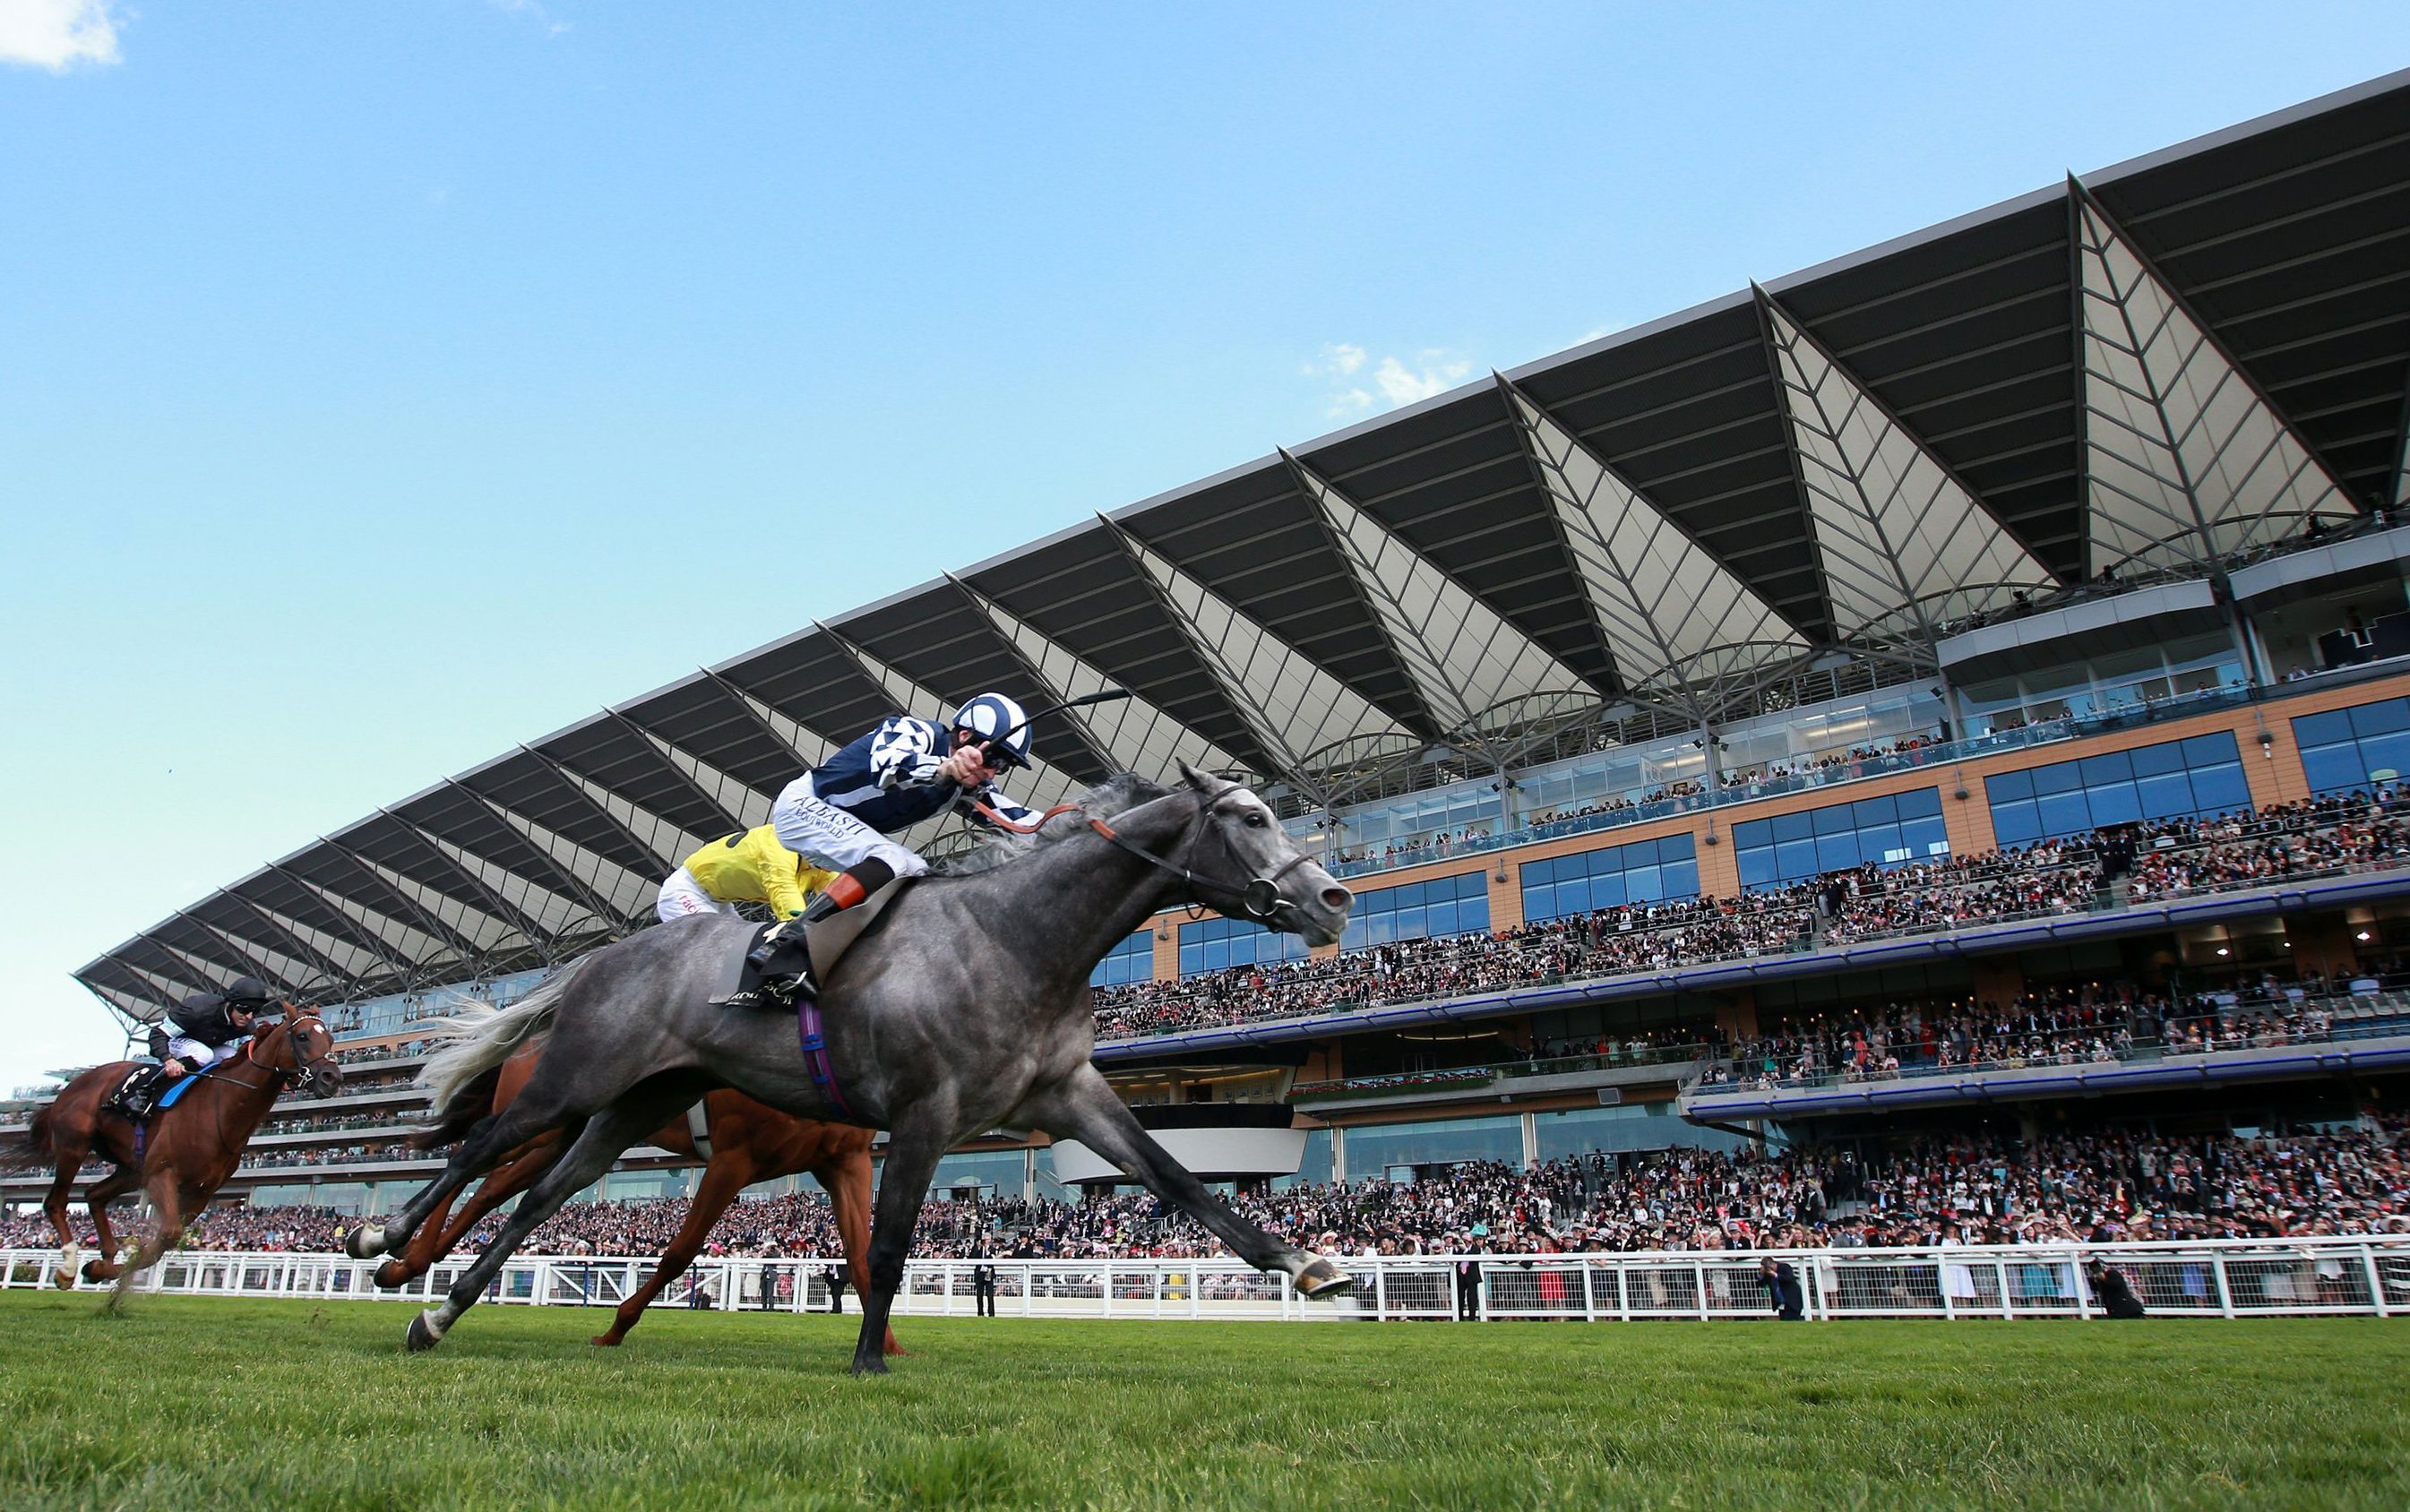 Arab Dawn ridden by Richard Hughes goes on to win the Duke Of Edinburgh Stakes during day four of the 2015 Royal Ascot meeting, Ascot, England, Friday, June 19, 2015. (David Davies/PA via AP) UNITED KINGDOM OUT, NO SALES, NO ARCHIVE